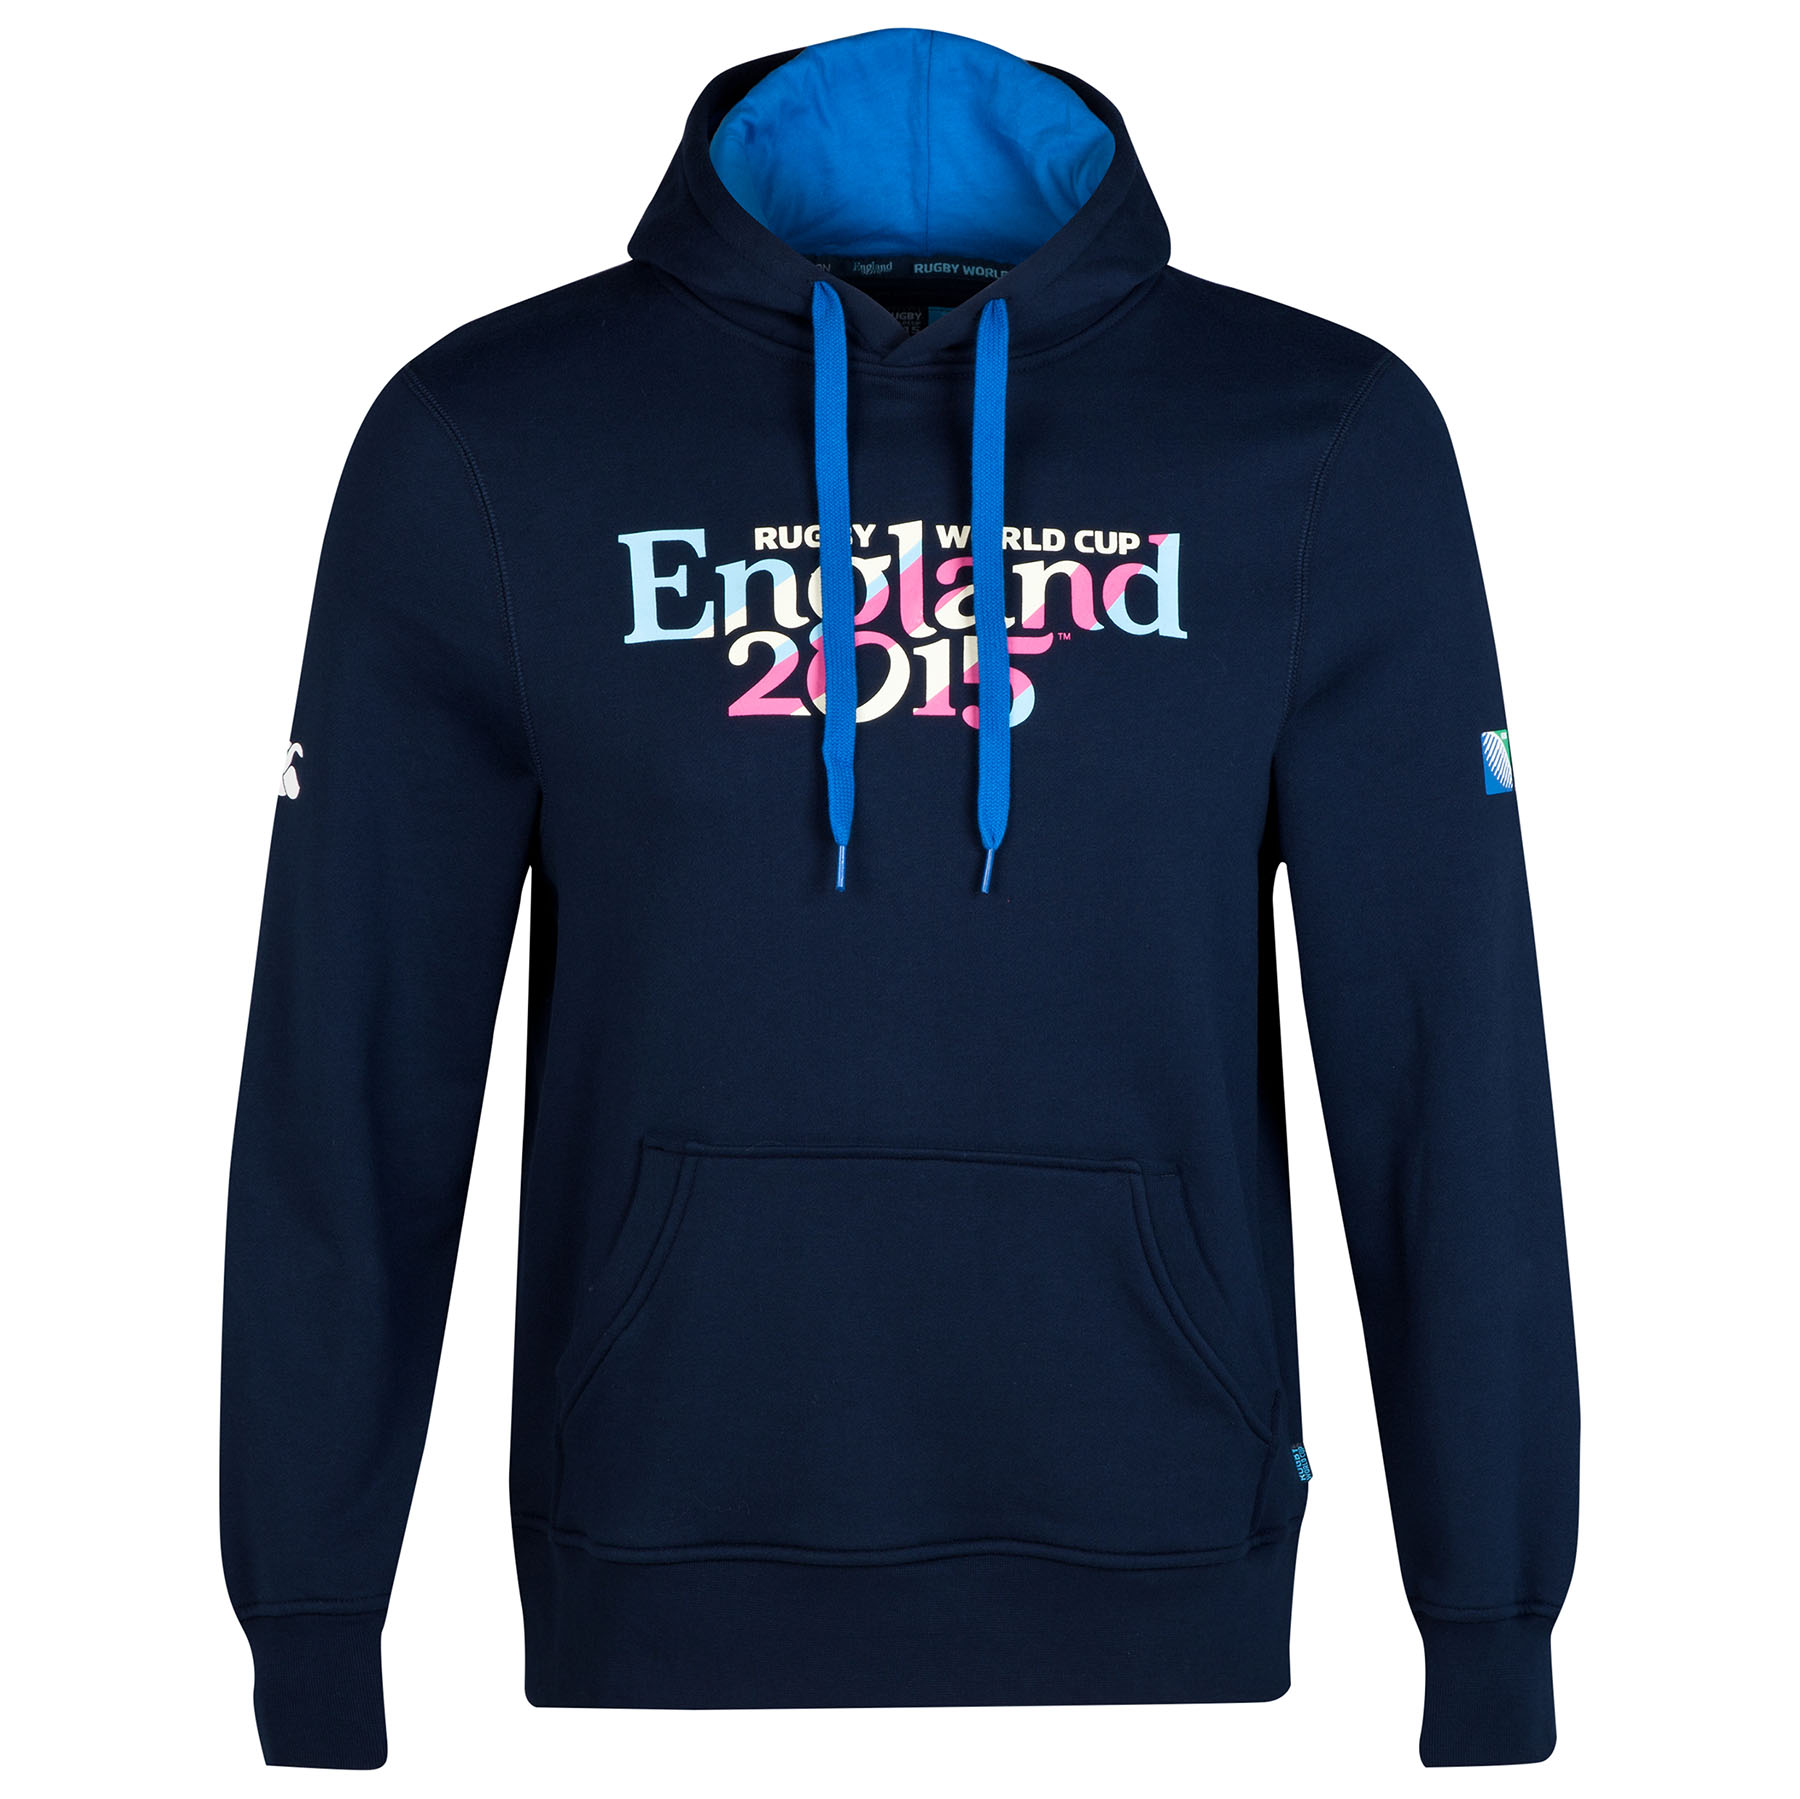 England Rugby World Cup 2015 Script Hoody - Navy